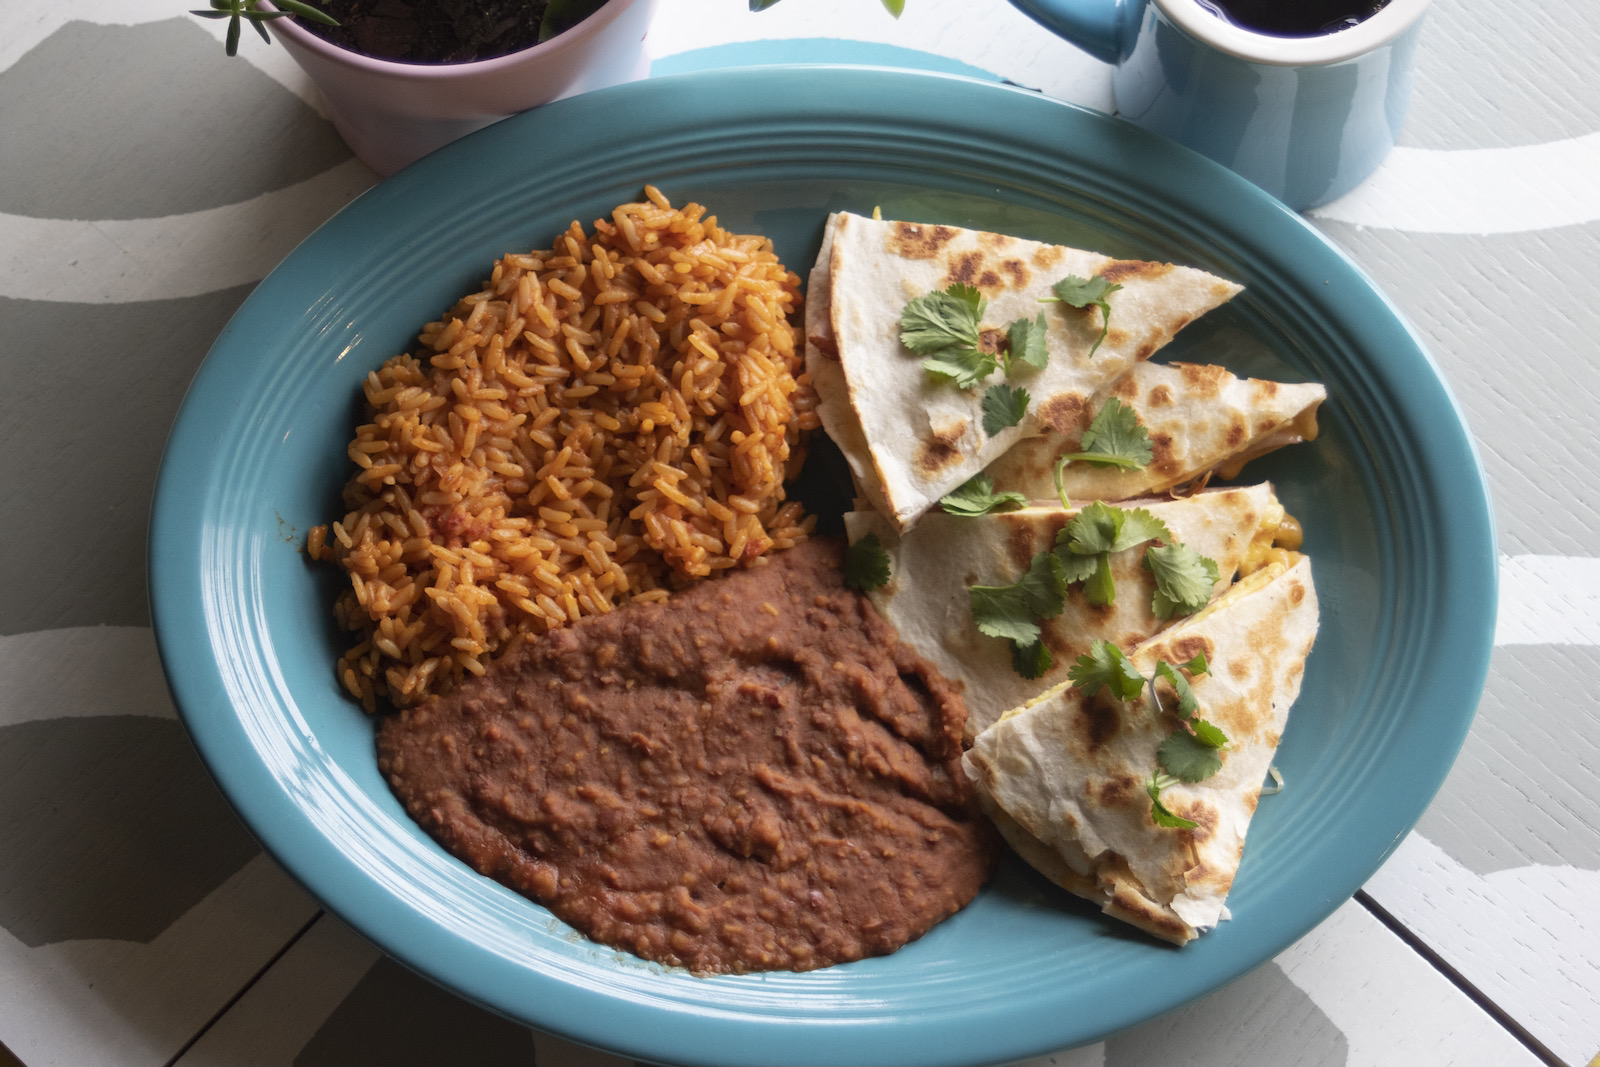 Brunch quesadilla with rice and beans